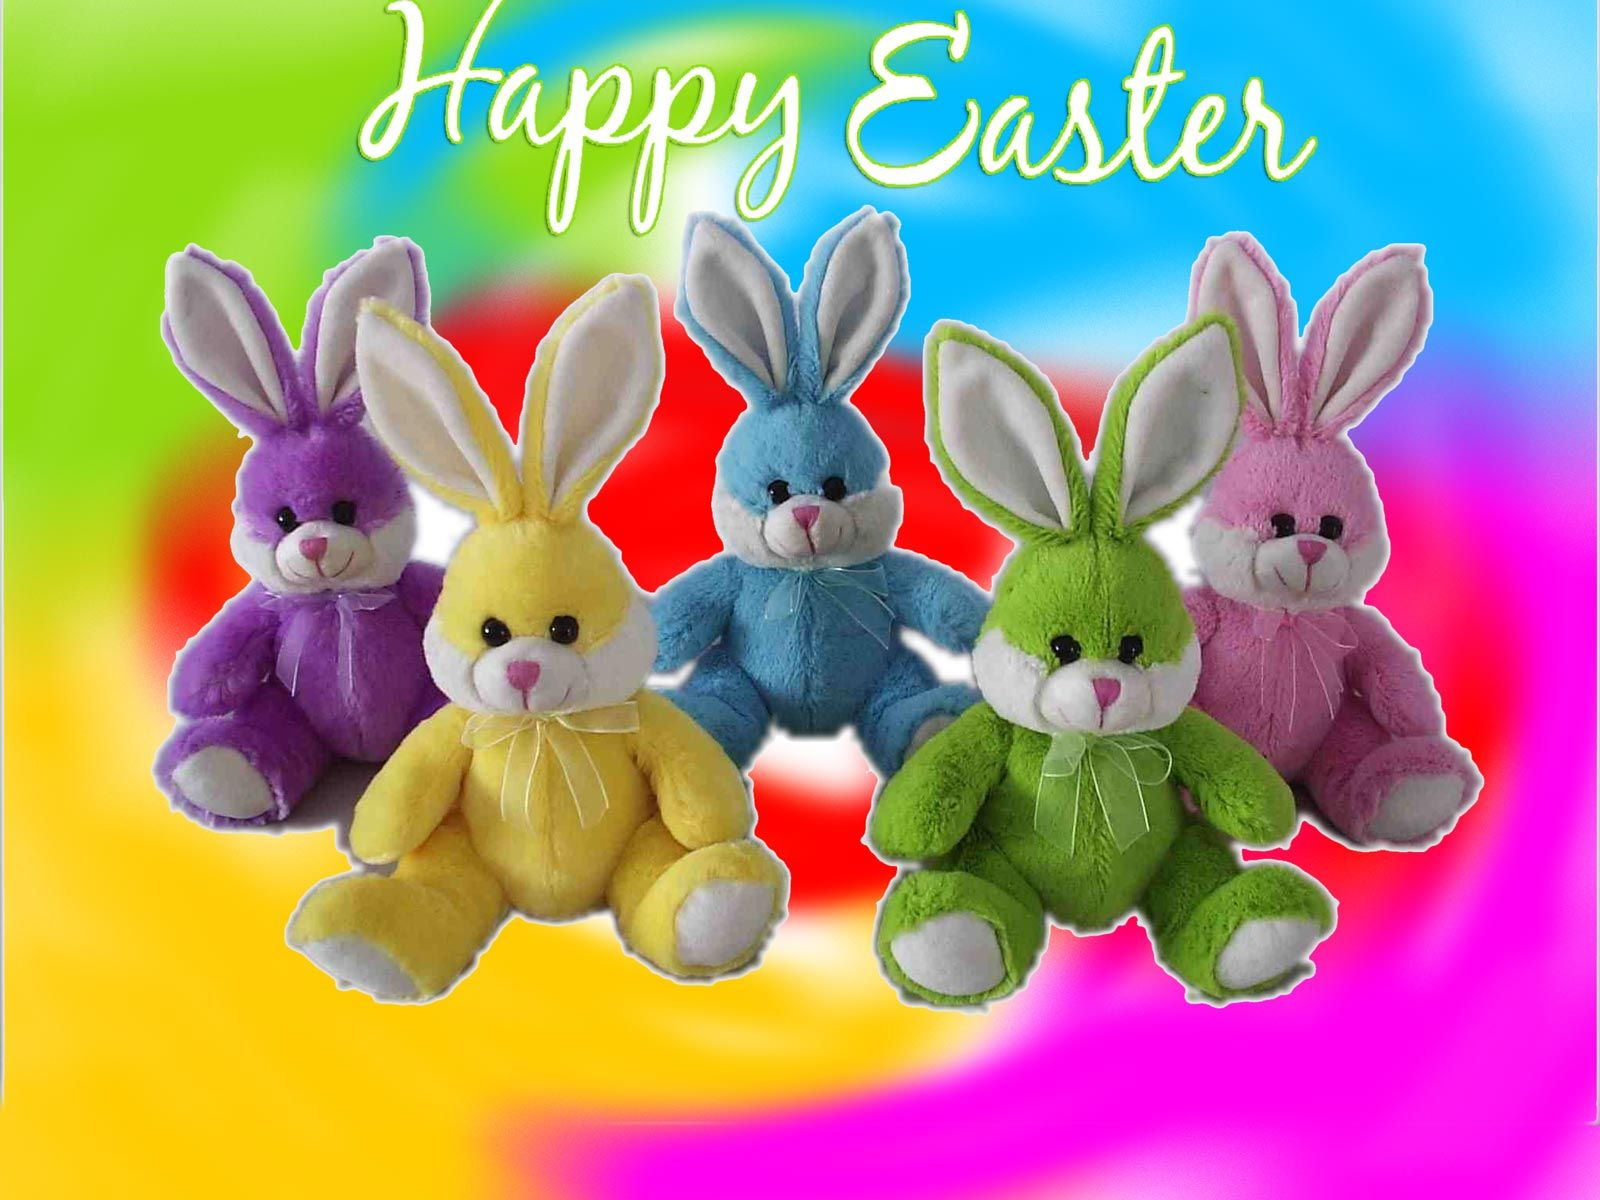 Happy easter happy easter 2014 messages easter wishes messages easter eggs wishes greetings cards educational entertainment kristyandbryce Choice Image